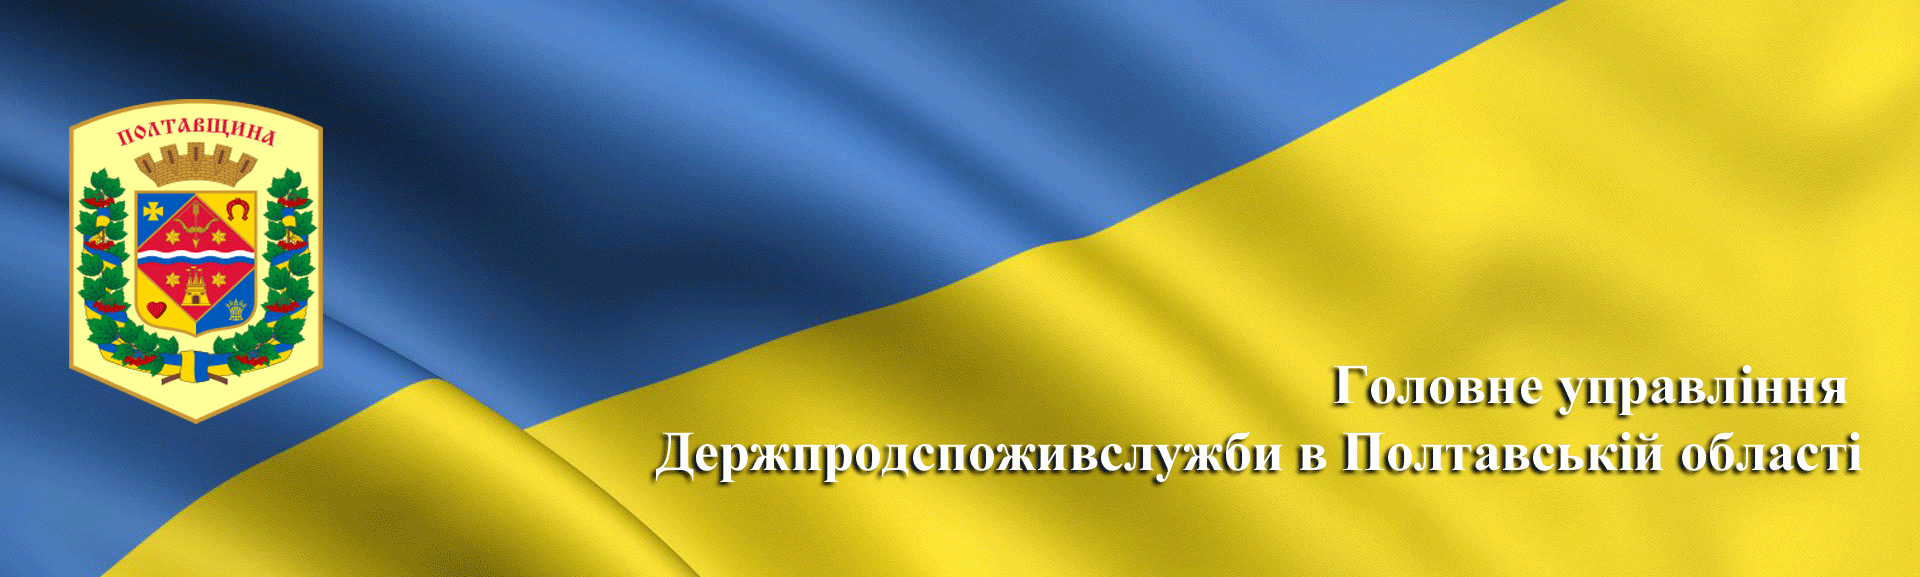 cropped-cropped-ukraine-1-1.png